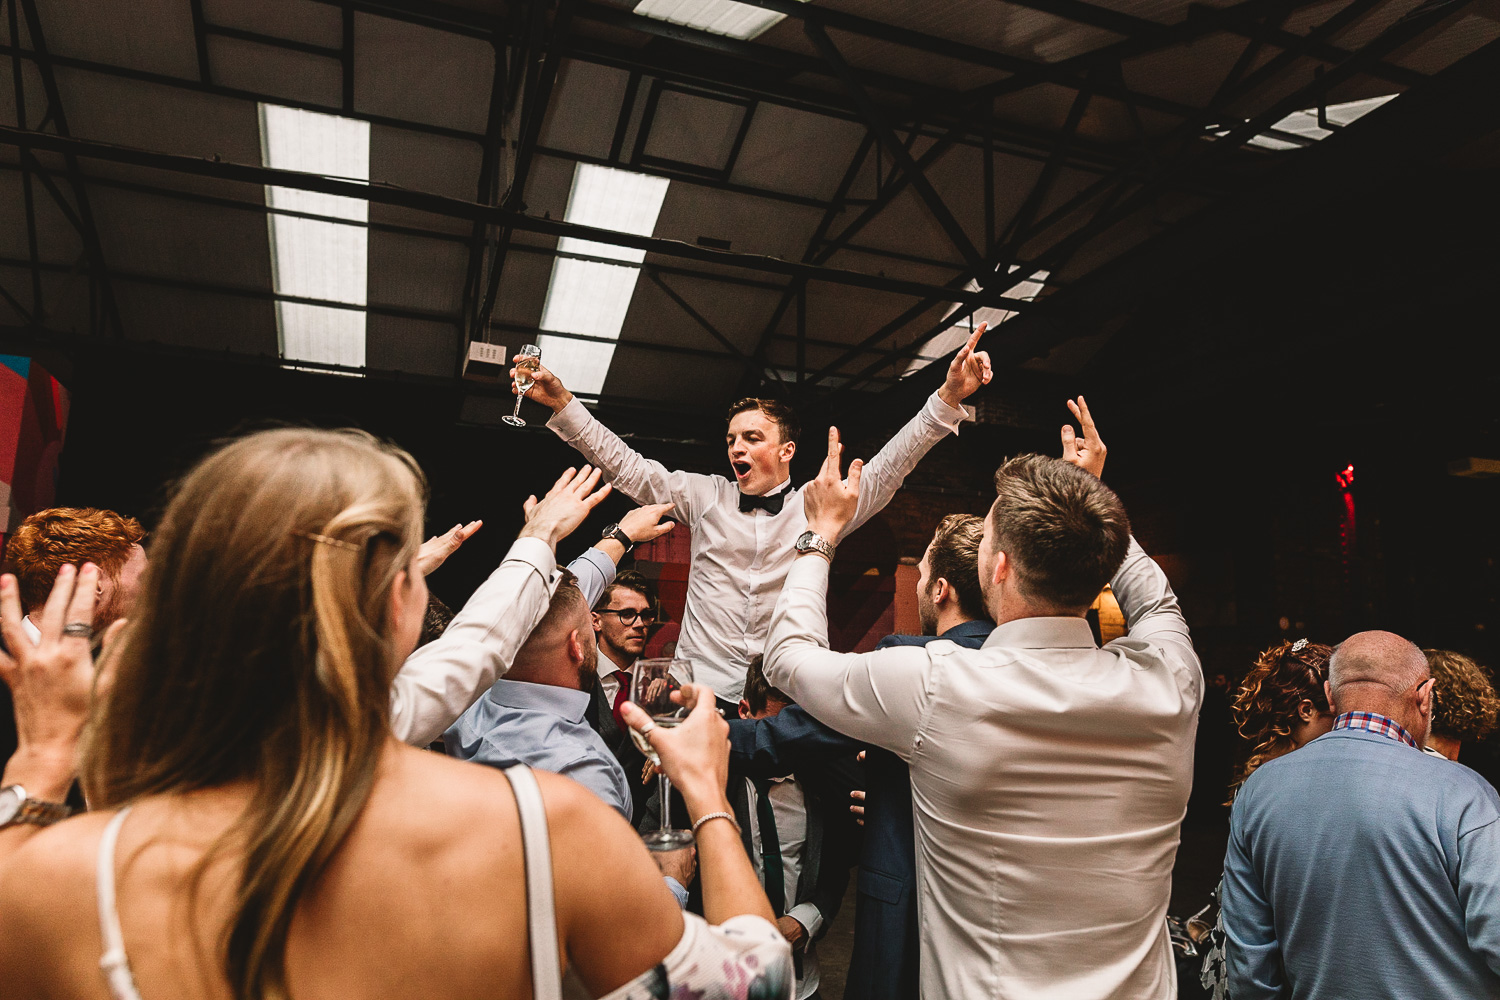 Photo shot from below of a groom on the shoulders of friends having fun with prosecco in one hand and arms in the air surrounded by friends in 92 Burton Road wedding venue in Sheffield